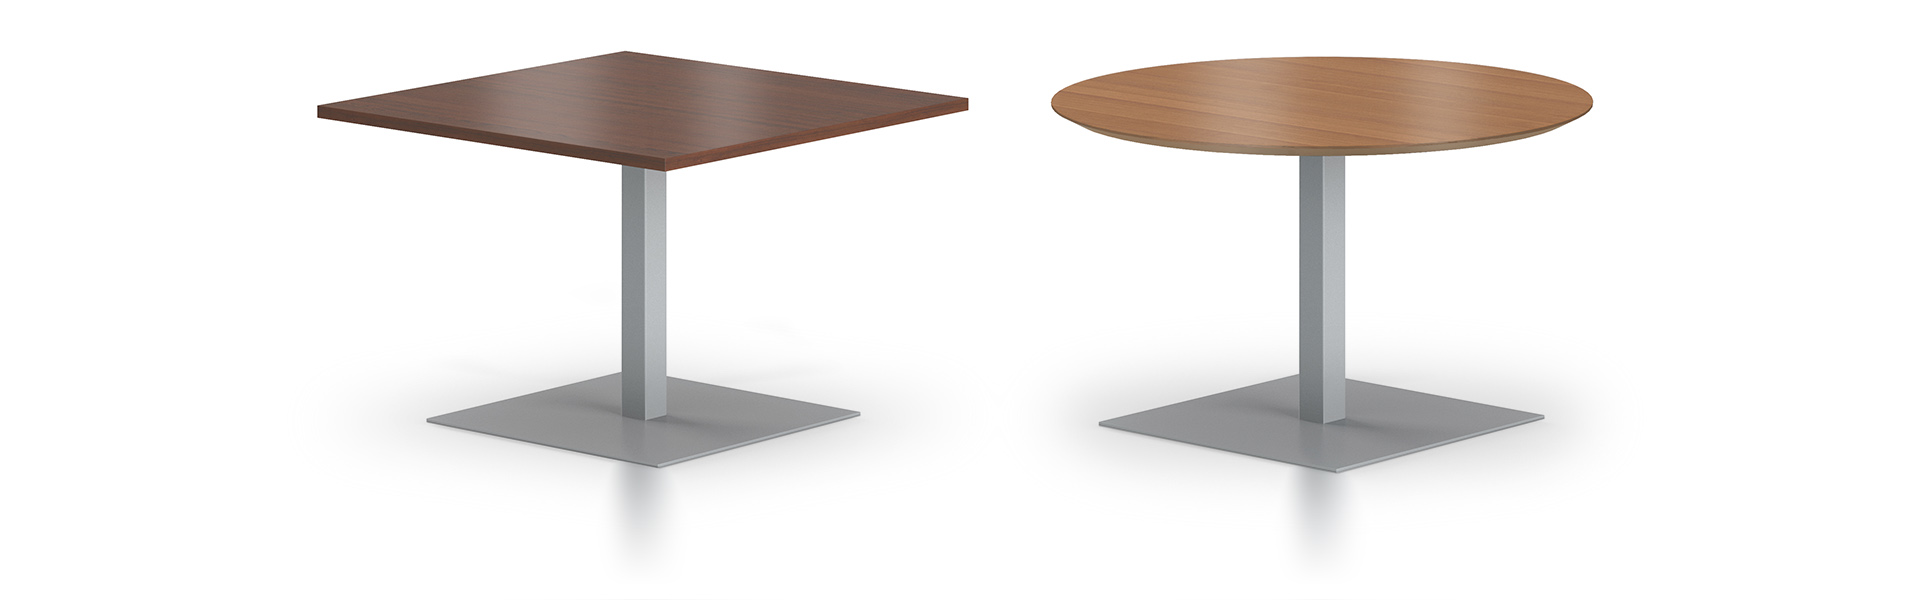 Disc And Square Bases Pair With Square Or Round Café Tops To Stand Out Or  Blend In With Your Environment. Available In Desk/dining Height Or Bar  Height.